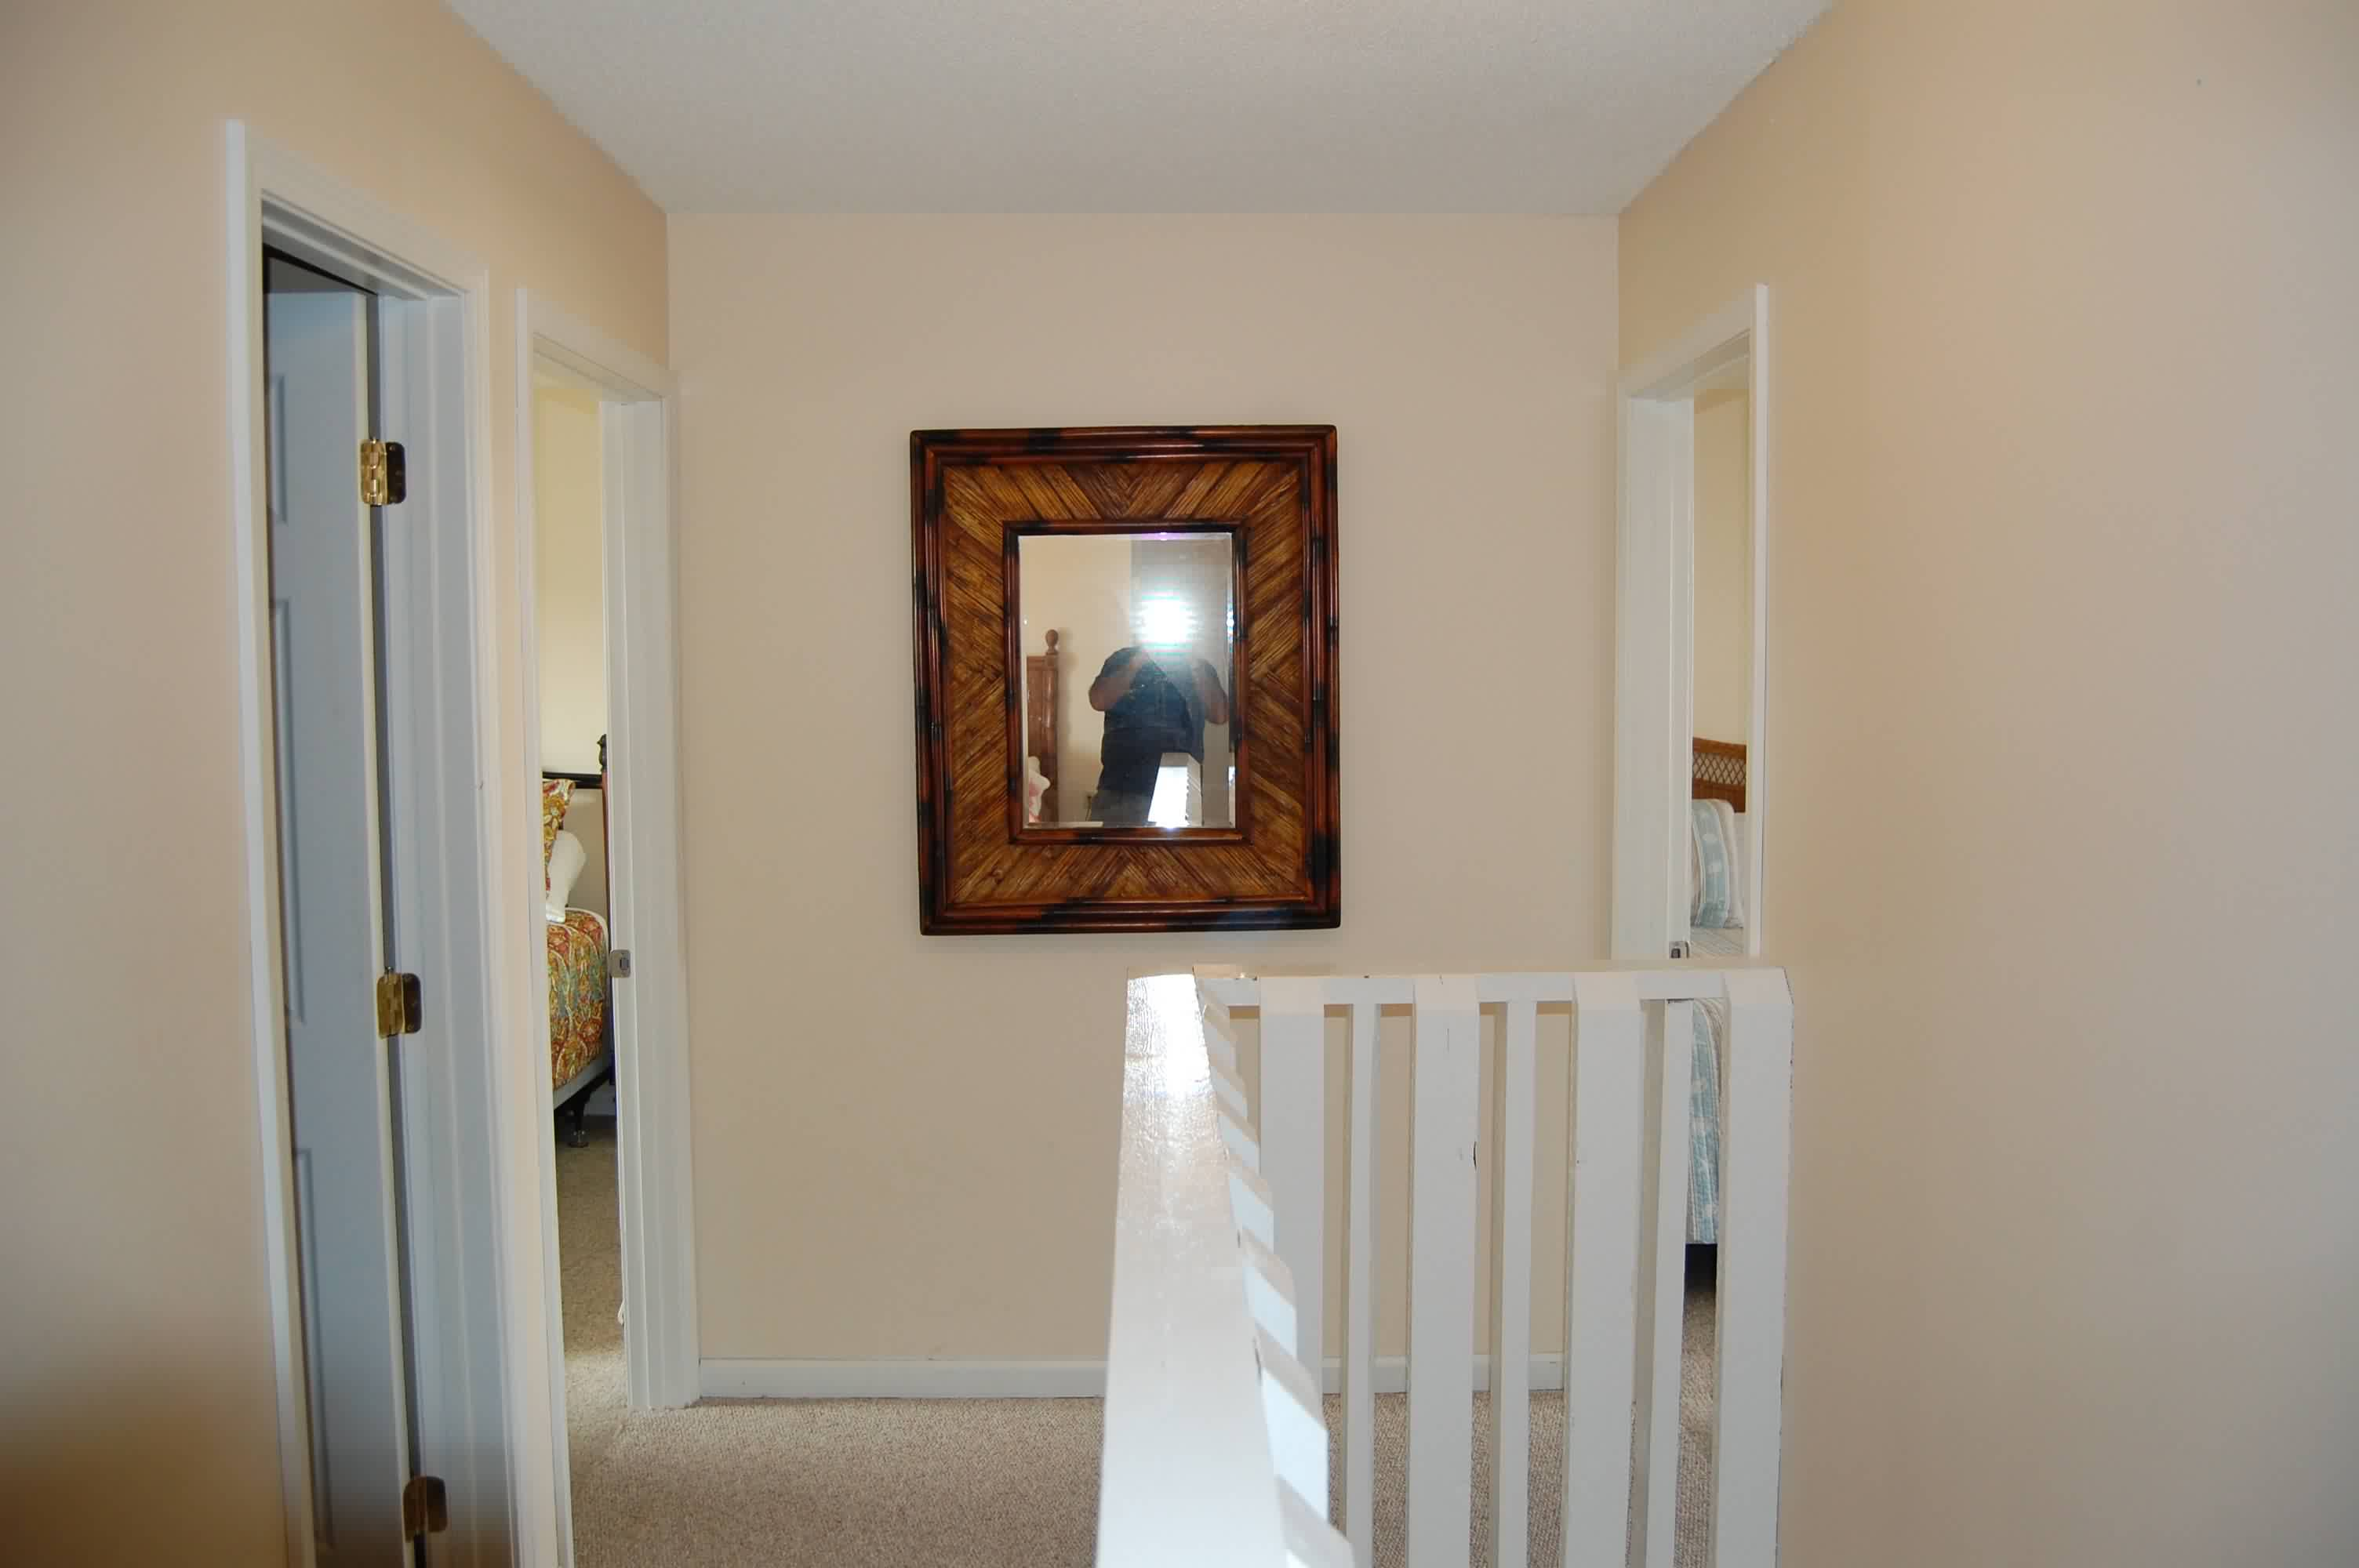 Upstairs hall view of 2nd and 3rd bedroom